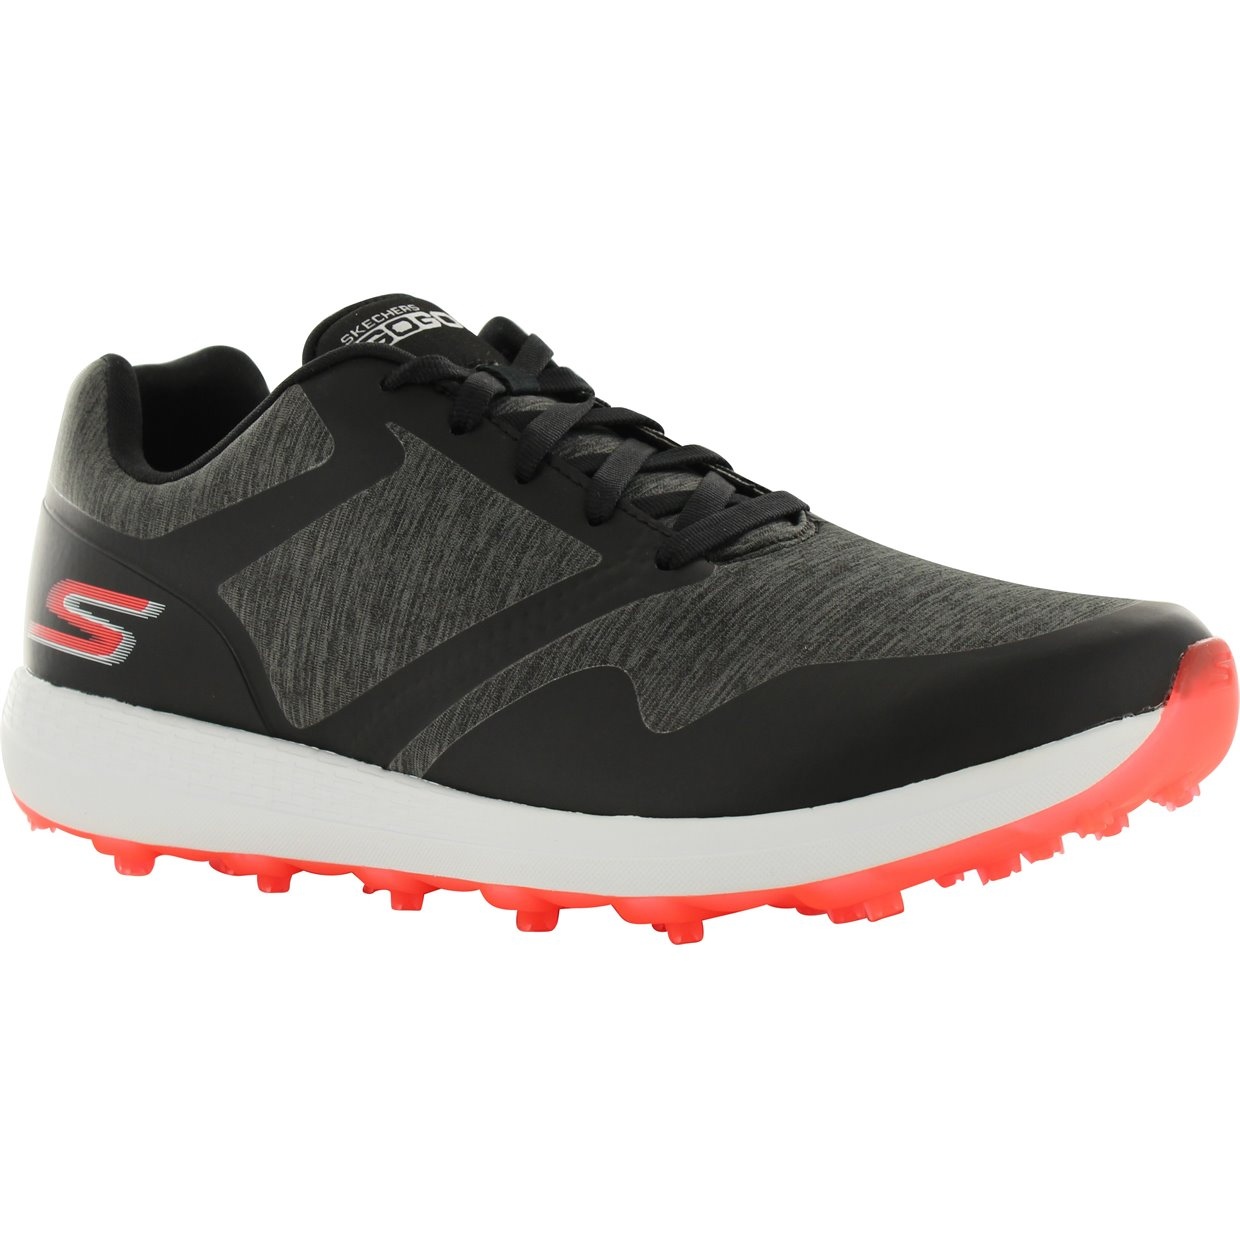 90ff61efaf96d Skechers Go Golf Max Cut Spikeless Shoes · Alternate Product Image of Right  Shoe Side Angle ...